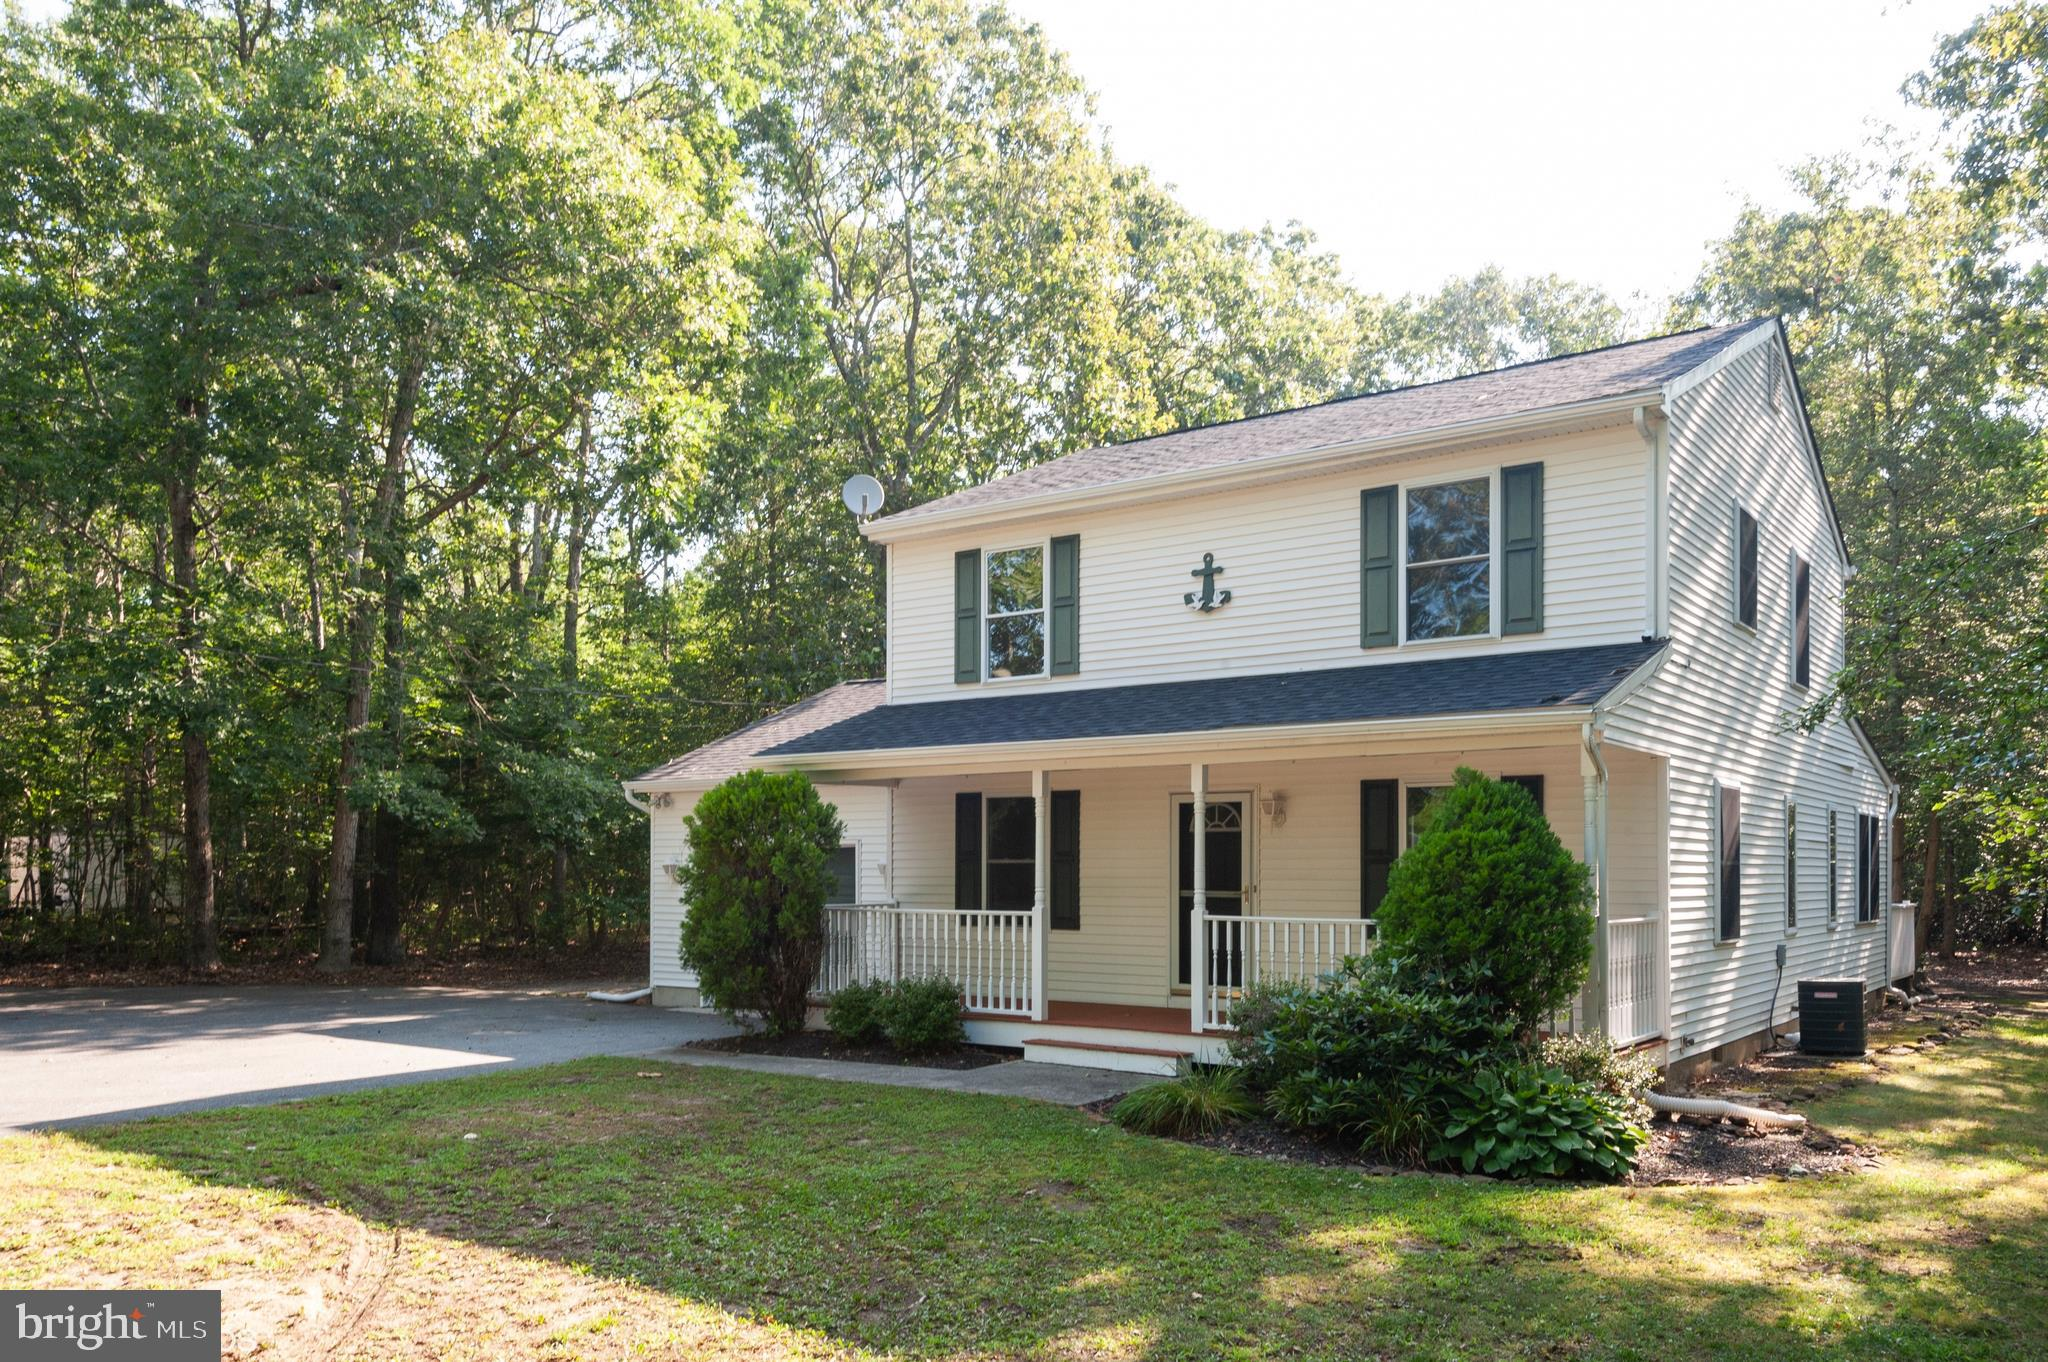 172 GRACETOWN ROAD, CAPE MAY COURT HOUSE, NJ 08210